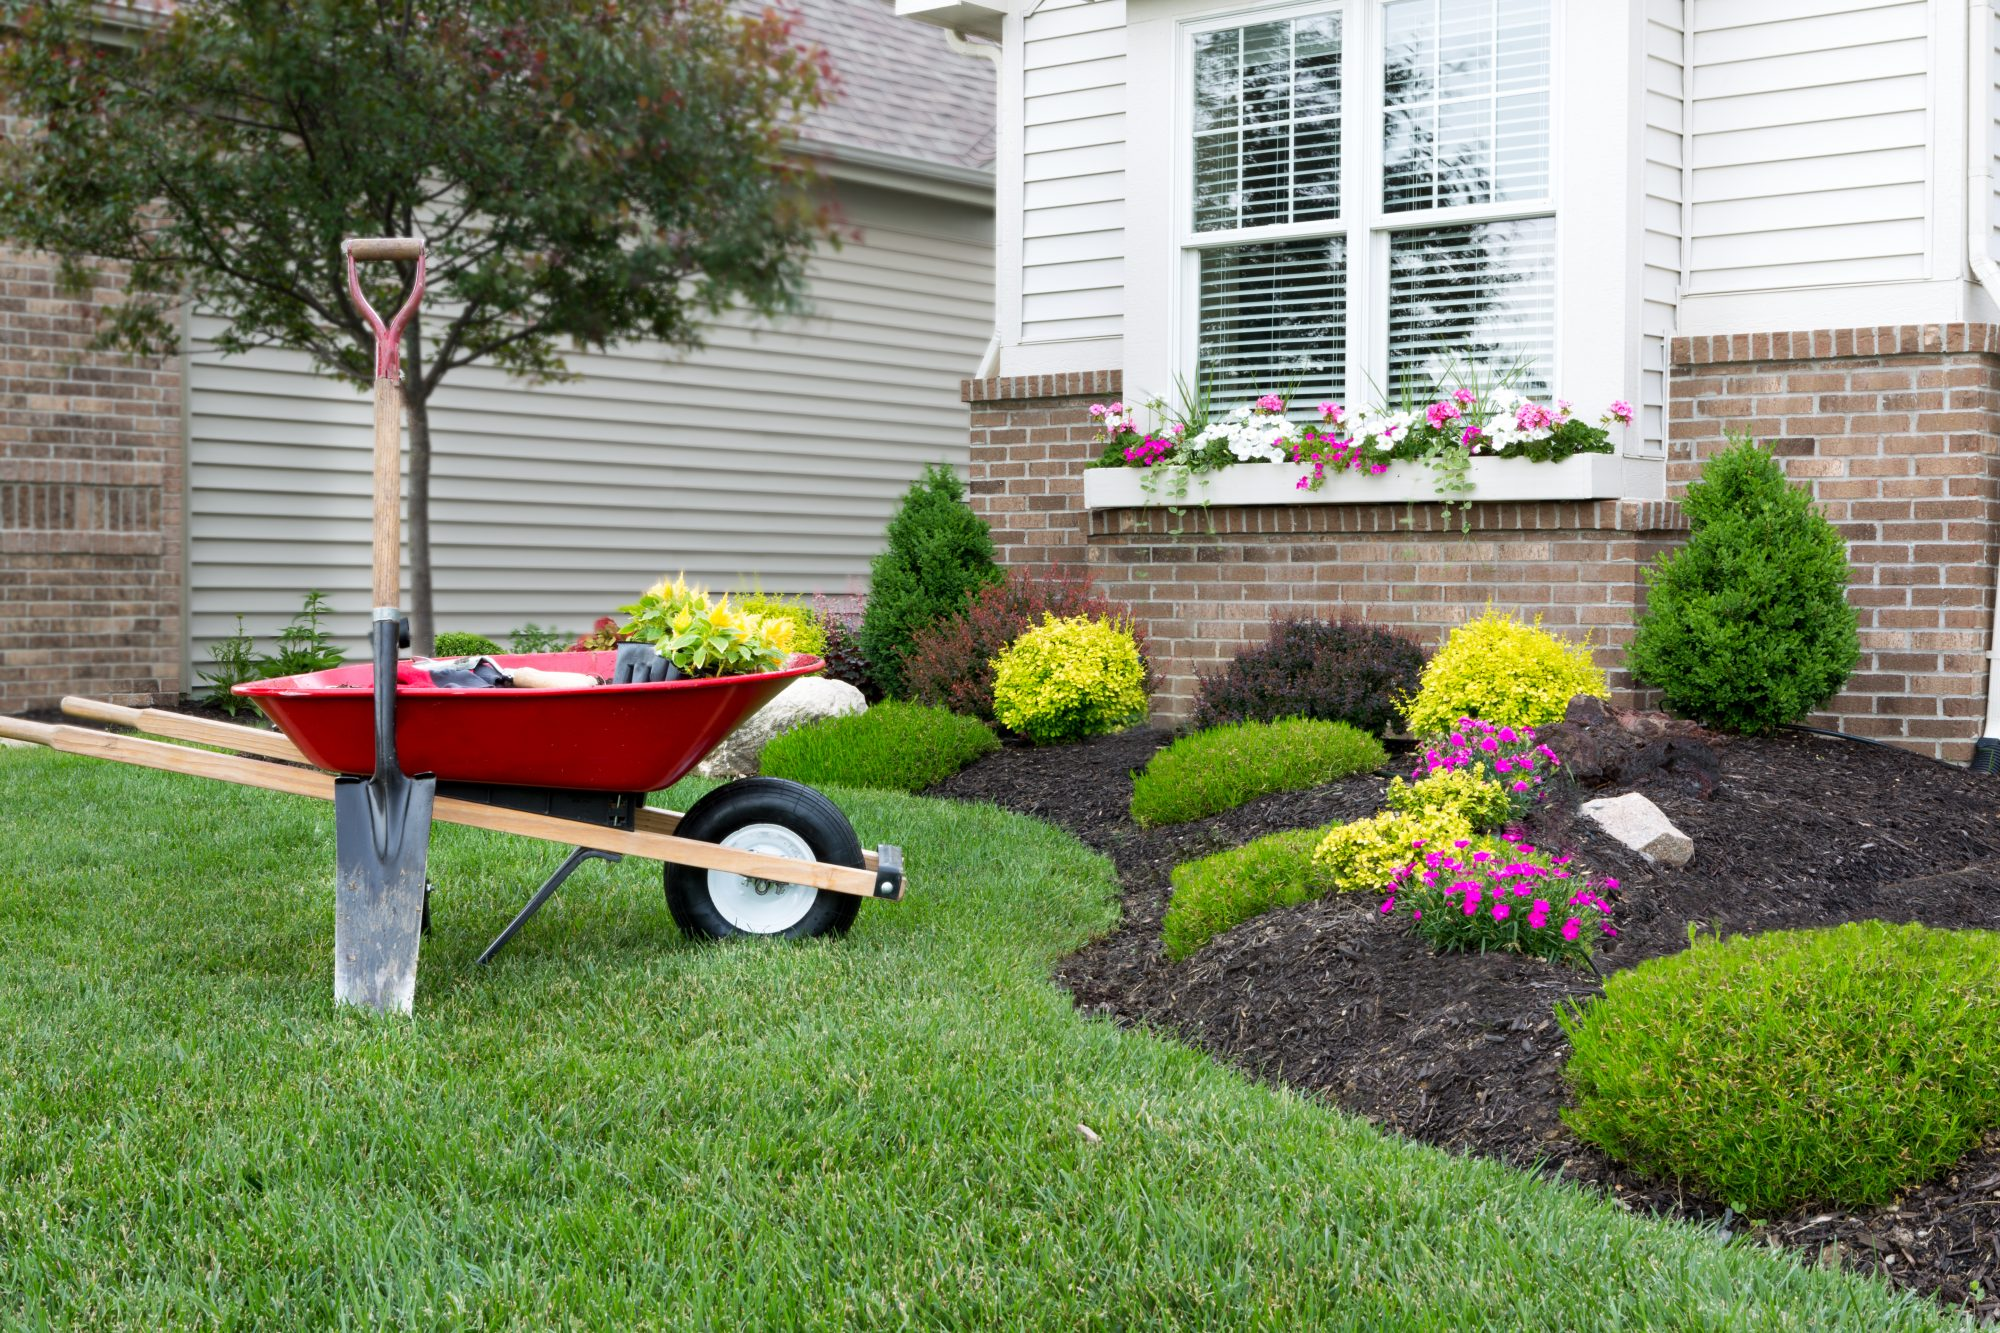 Yard Care Tips to Get Your Backyard Ready for Summer